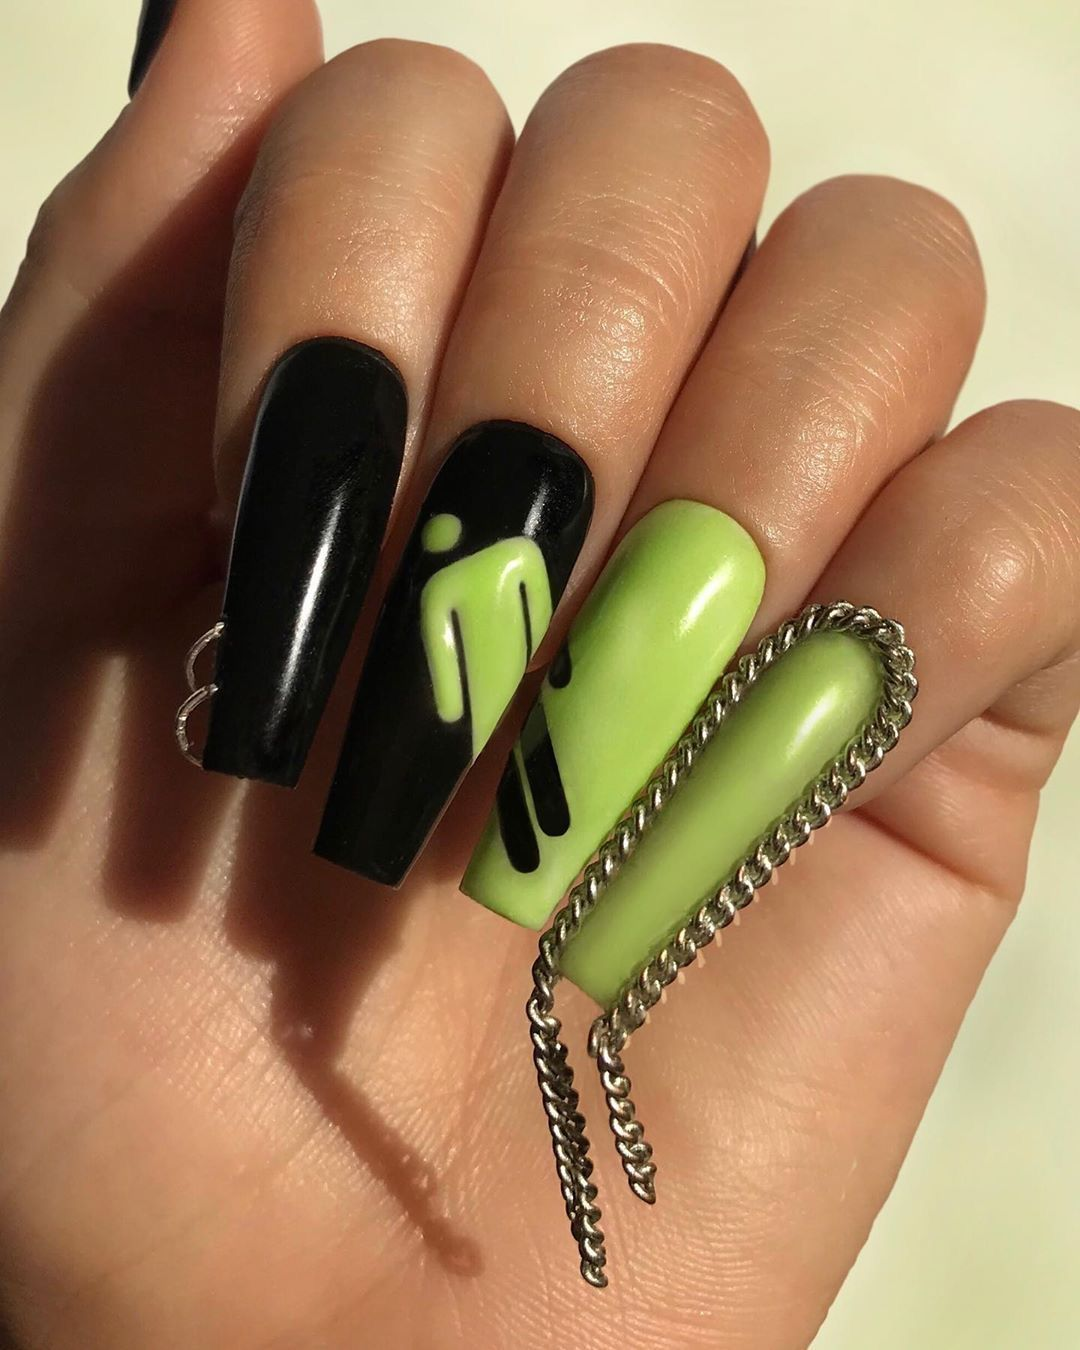 Billie Eilish In 2020 Edgy Nails Concert Nails Grunge Nails